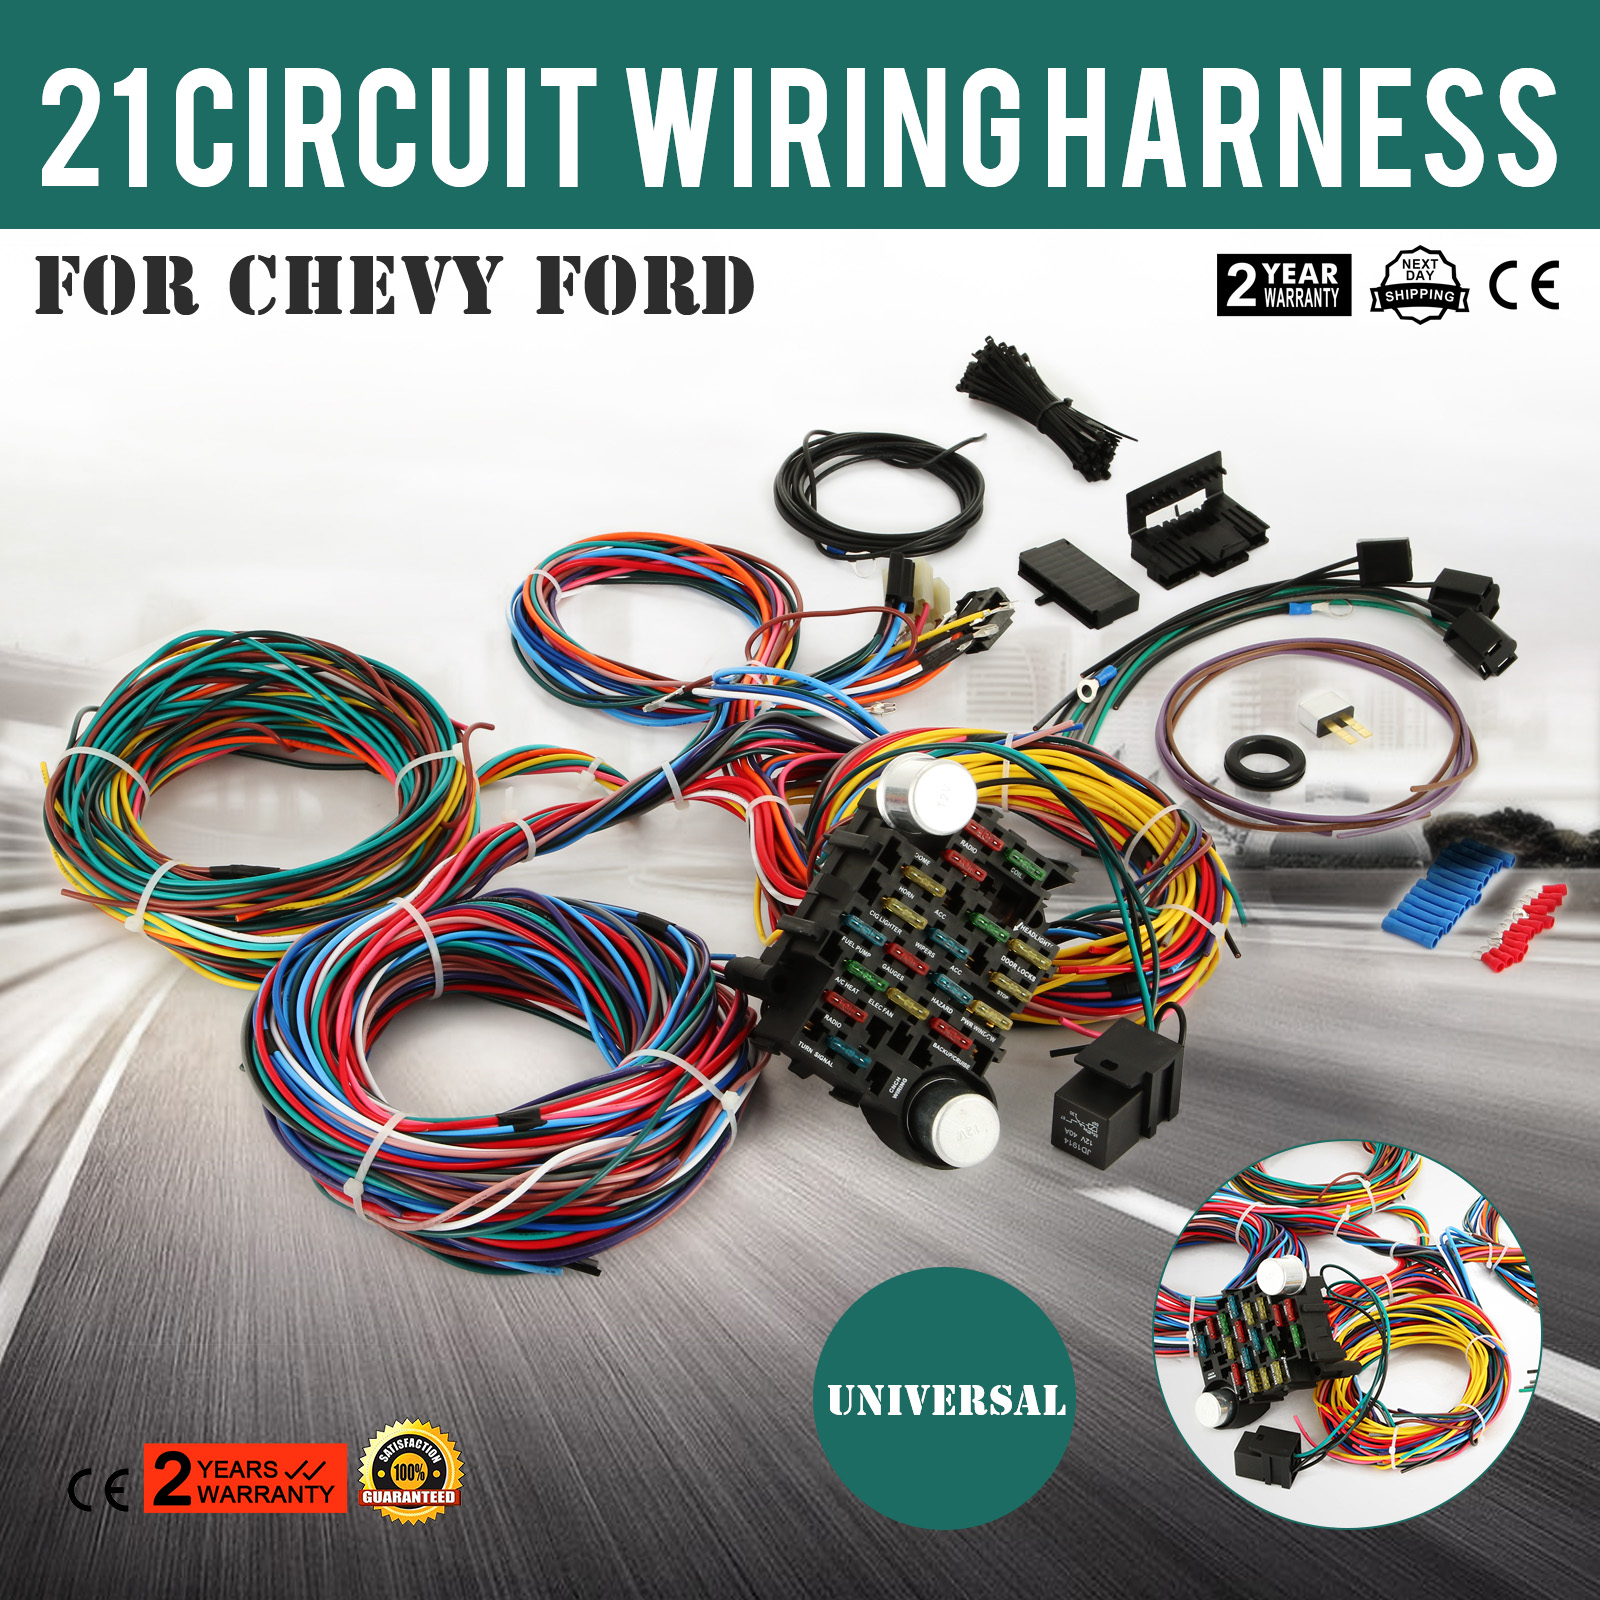 21 Circuit Wiring Harness For Chevy Universal Wires Fit X-long ... on chevy warning sticker, chevy alternator harness, chevy wiring horn, chevy clutch assembly, chevy 1500 wireing harness color codes, chevy rear diff, chevy battery terminal, chevy front fender, chevy speaker wiring, chevy radiator cap, chevy wheel cylinders, chevy fan motor, chevy wiring schematics, chevy relay switch, chevy speaker harness, chevy crossmember, chevy power socket, chevy wiring connectors, chevy clutch line, chevy abs unit,